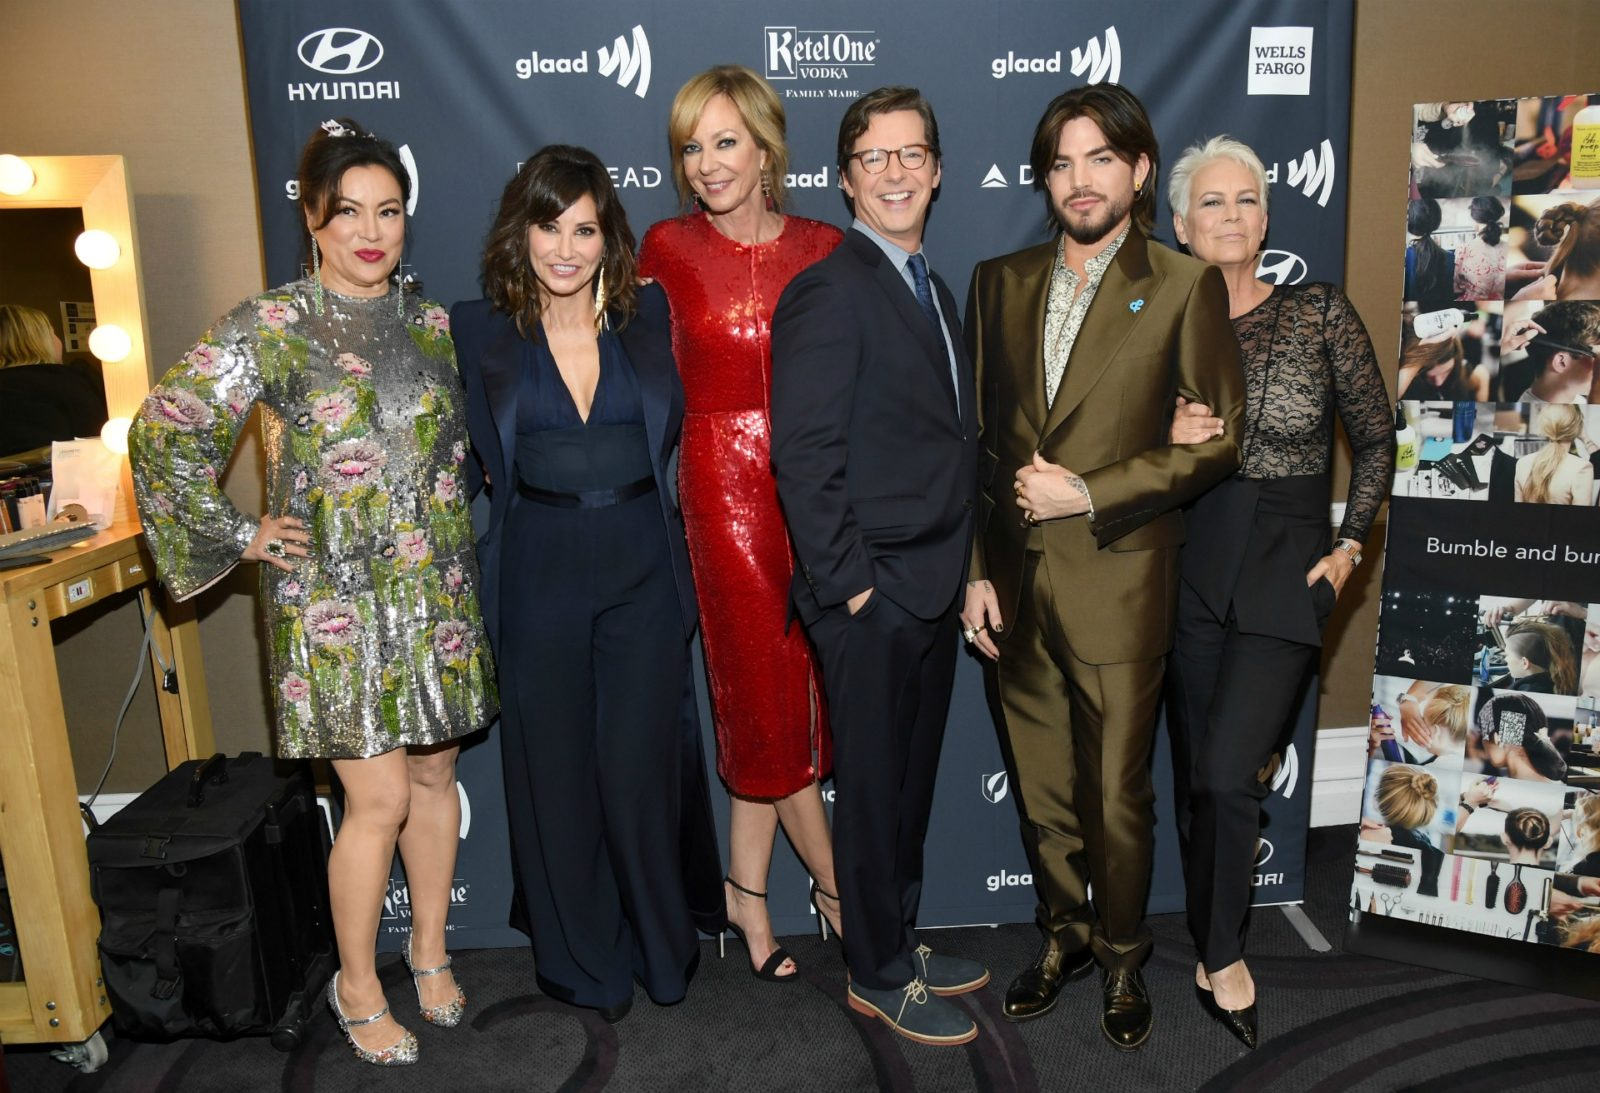 Jennifer Tilly, Gina Gershon, Allison Janney, Sean Hayes, Adam Lambert, and Jamie Lee Curtis pose together.